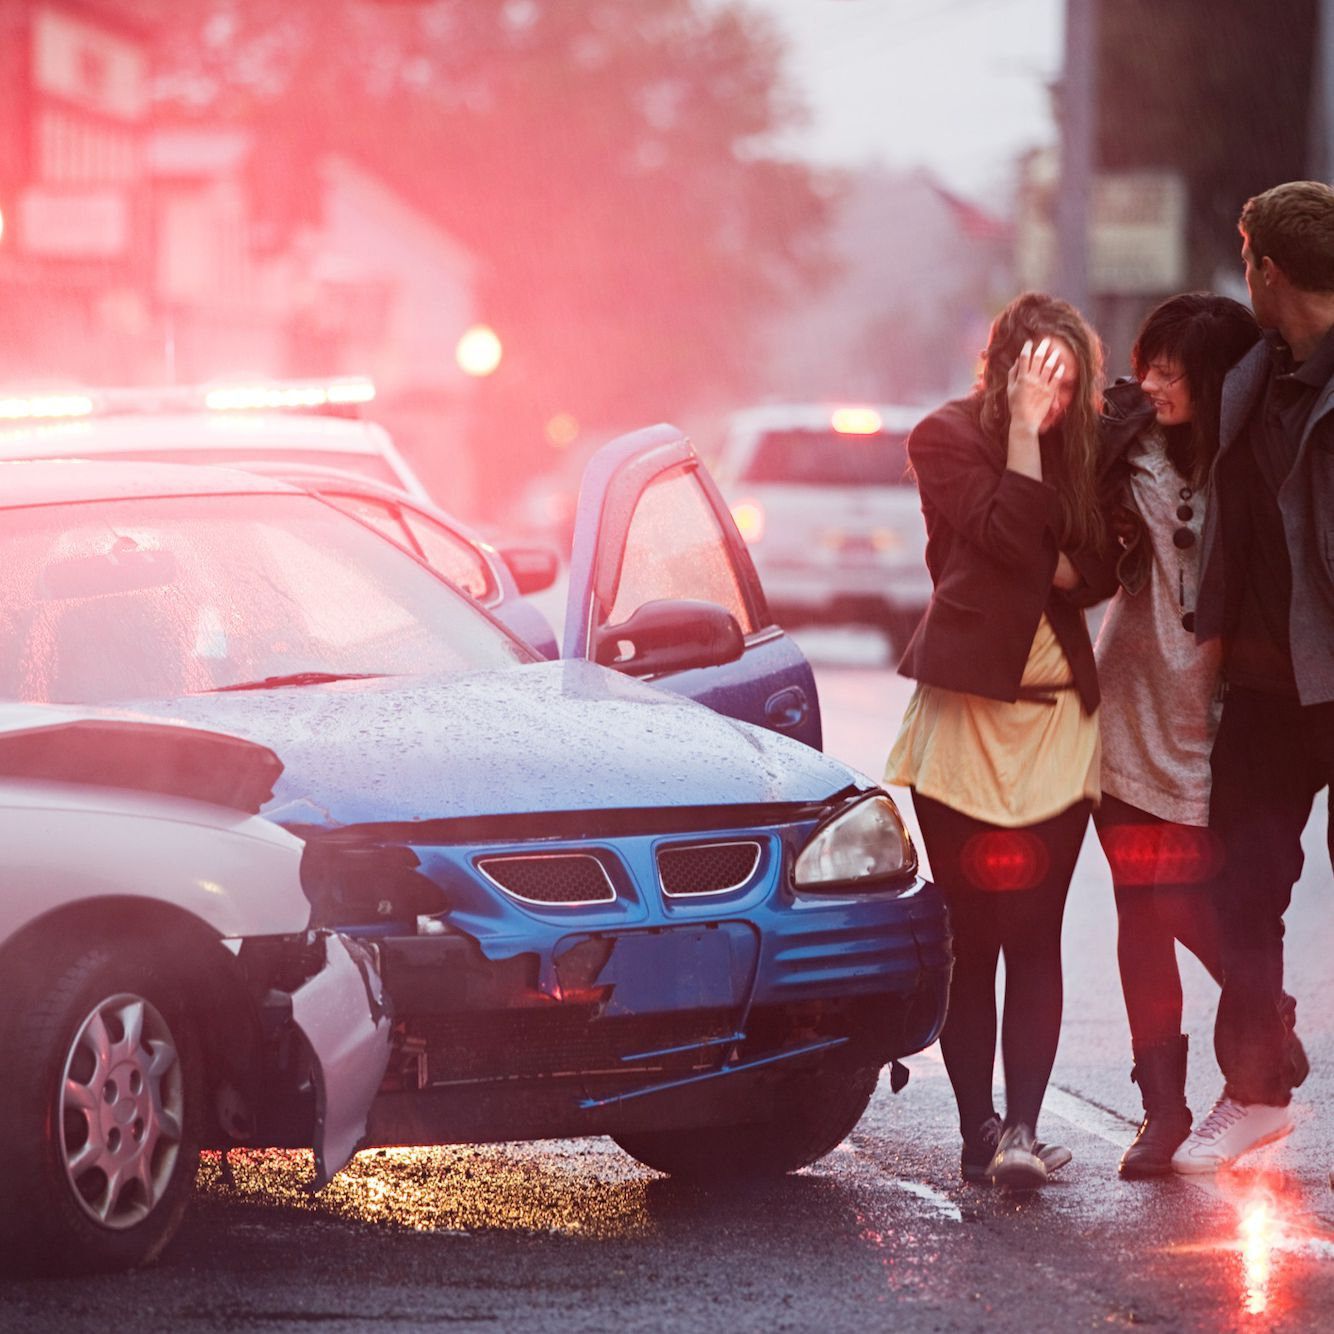 The Risk of PTSD After a Car Accident